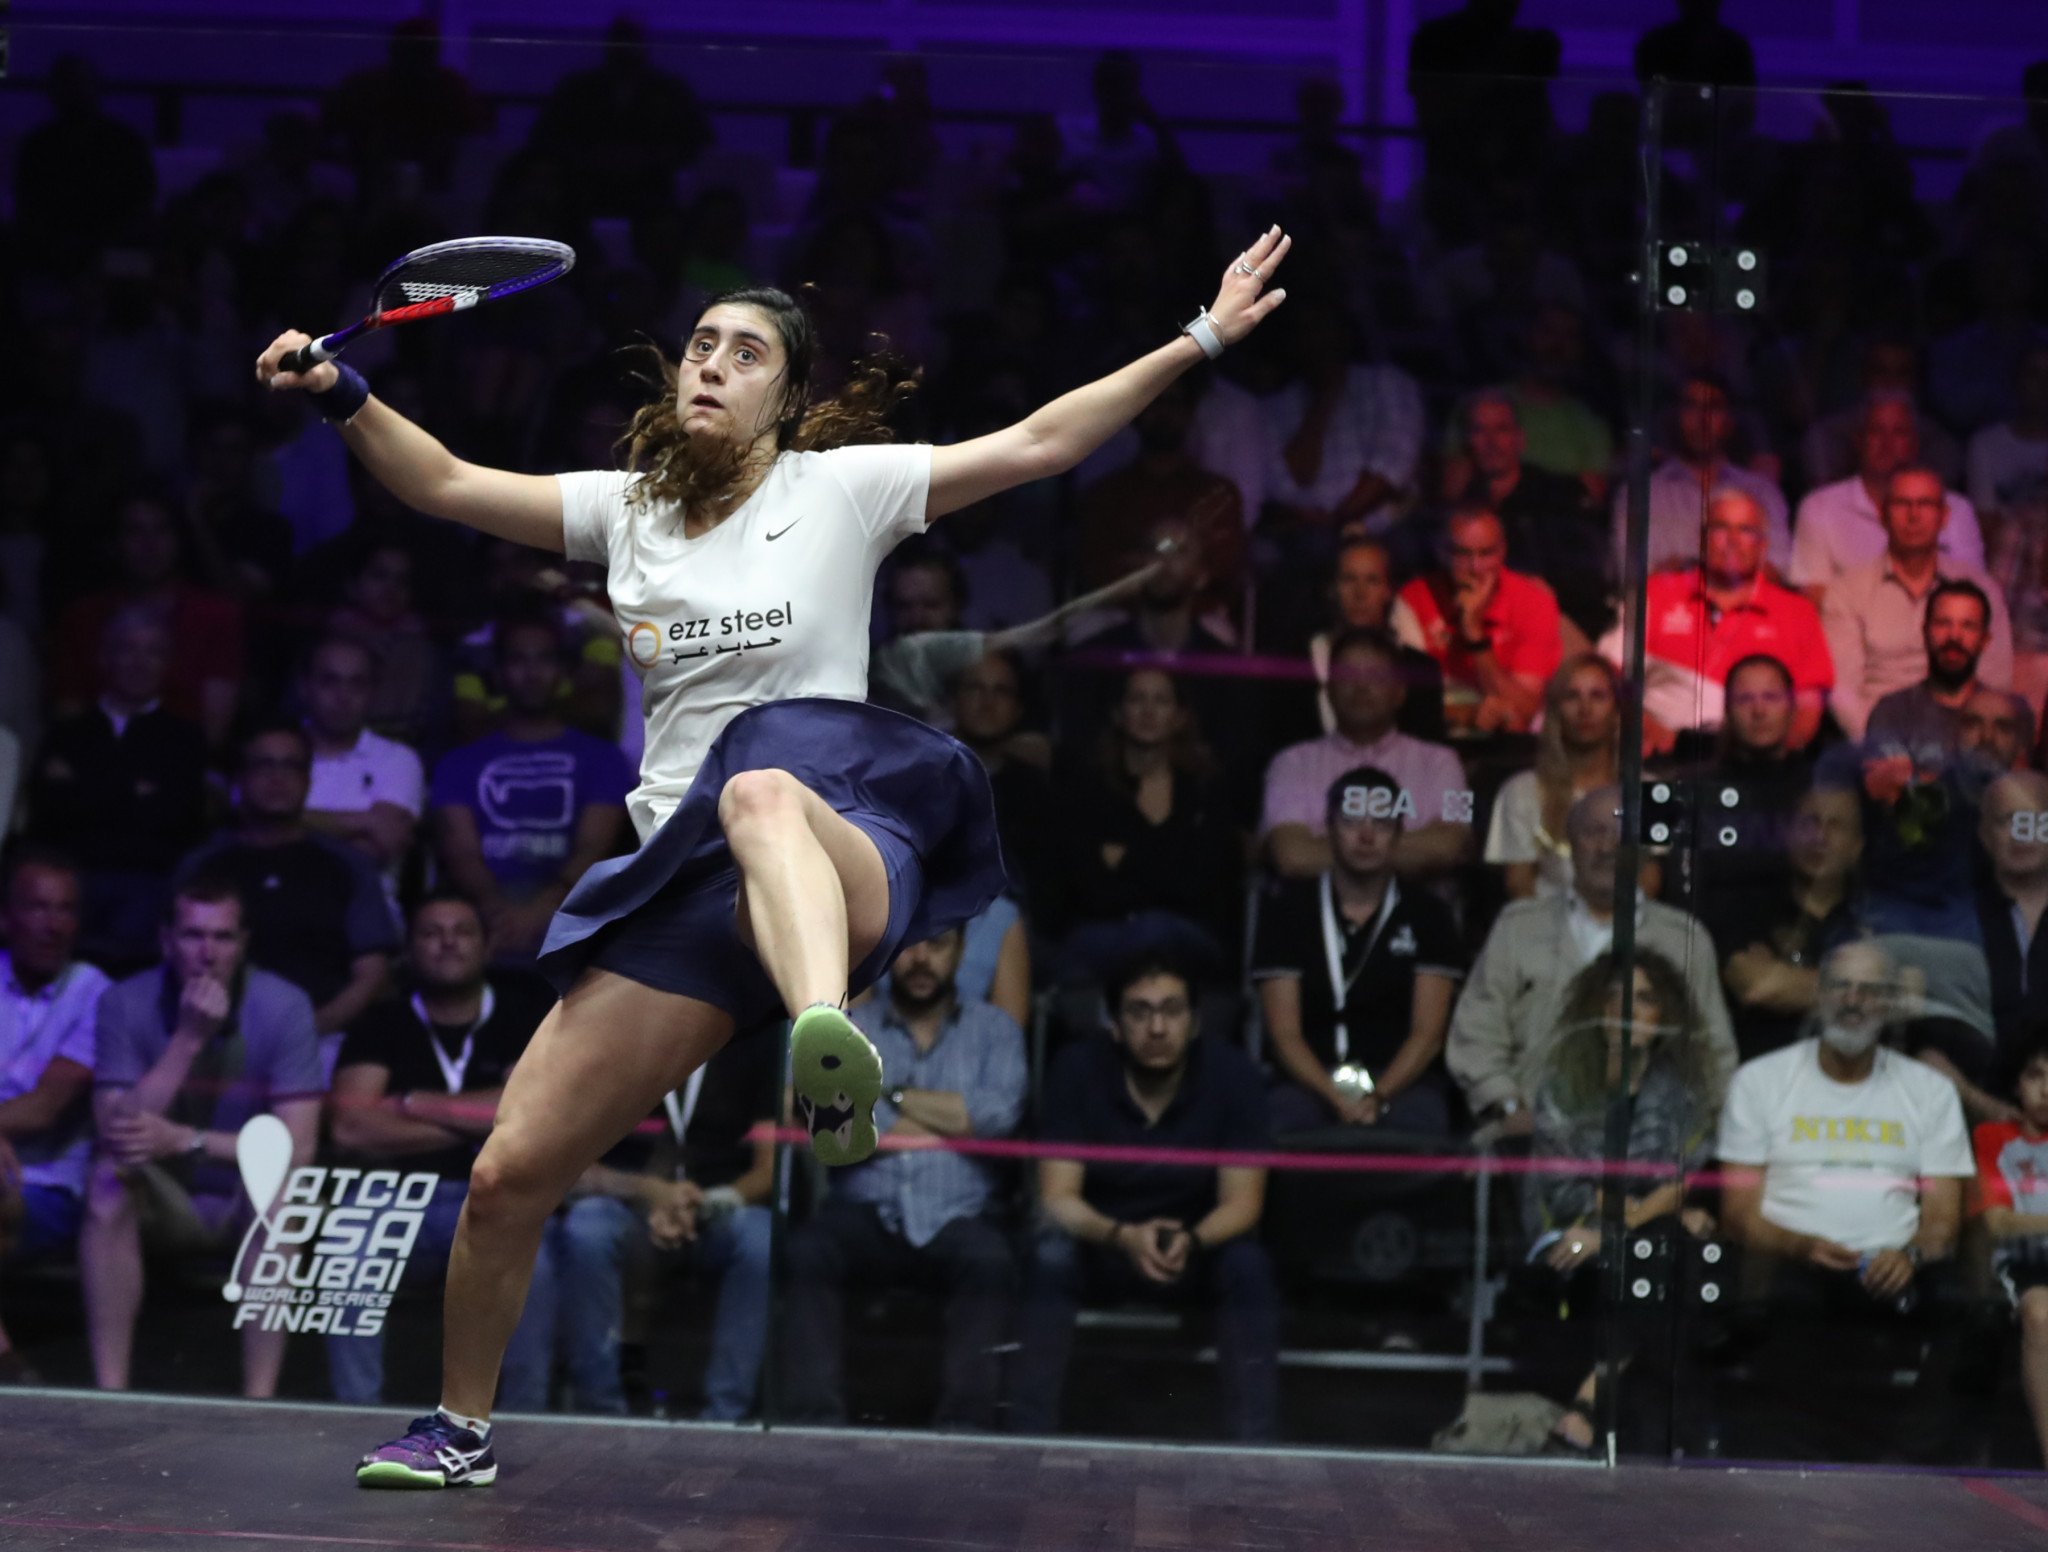 World champions El Sherbini and Farag eliminated in PSA Tour Finals group stage